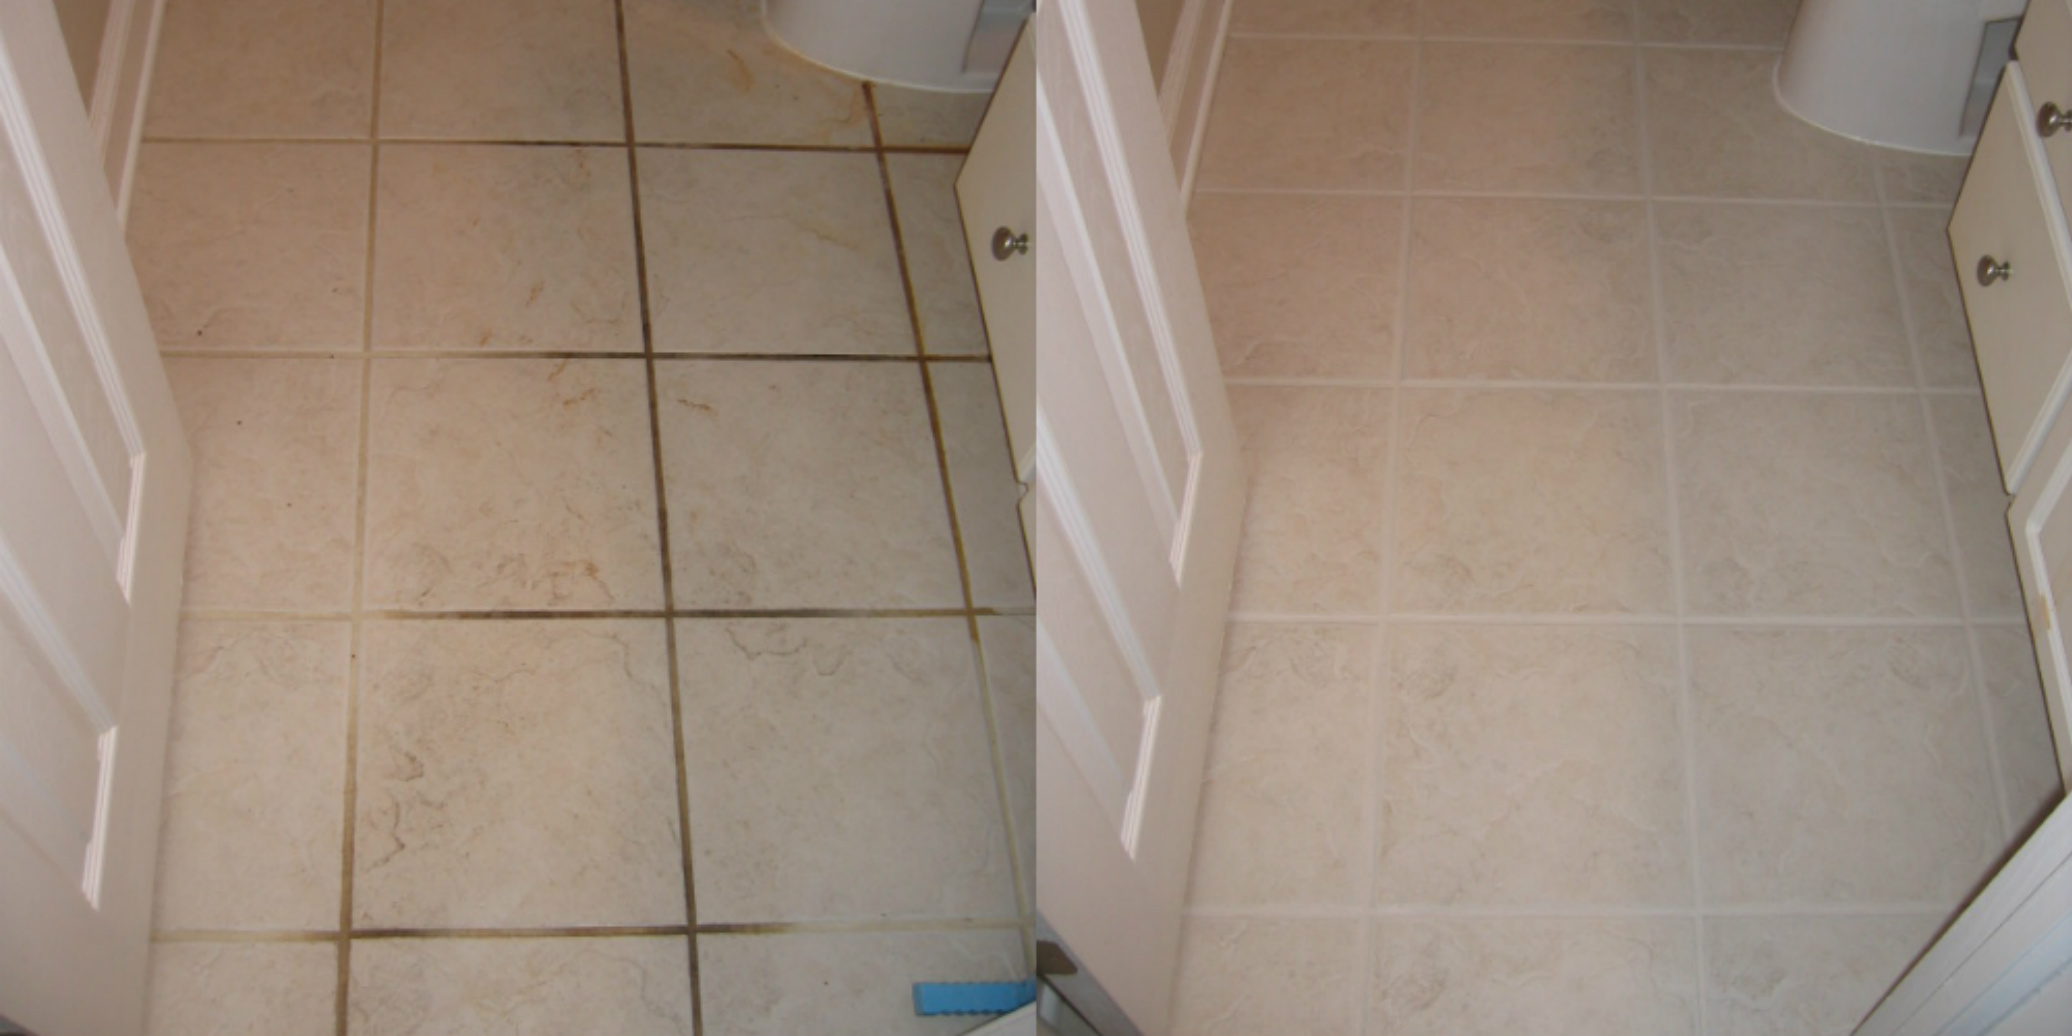 Tile and grout cleaning melbourne 1800233141 tile and grout tile re grouting melbourne dailygadgetfo Images